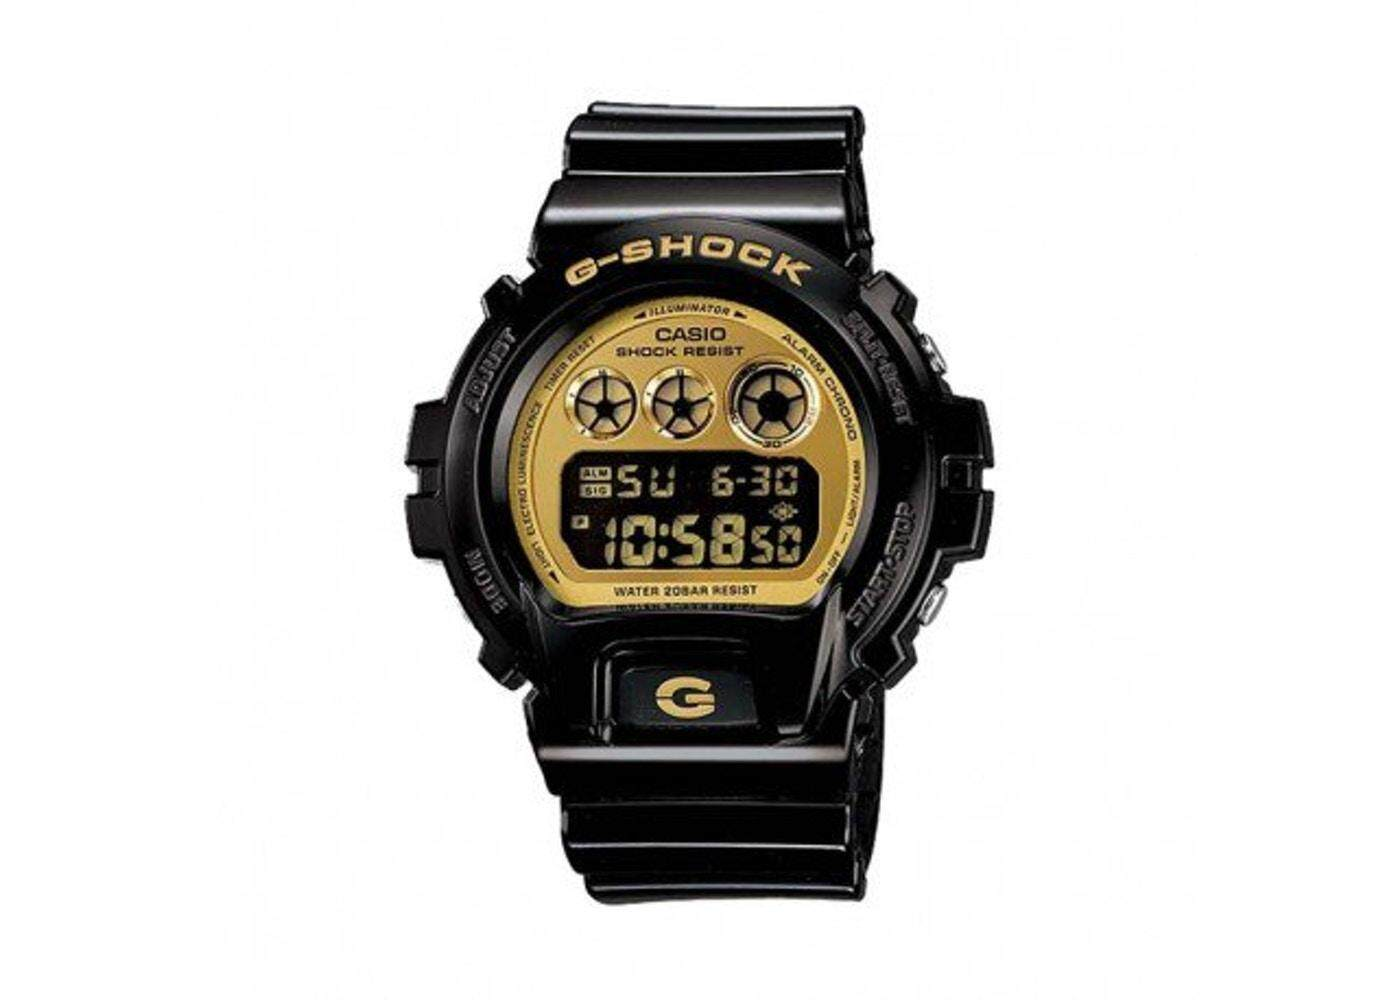 G SHOCK_ DW6900 WATCHES WITH BOX Malaysia